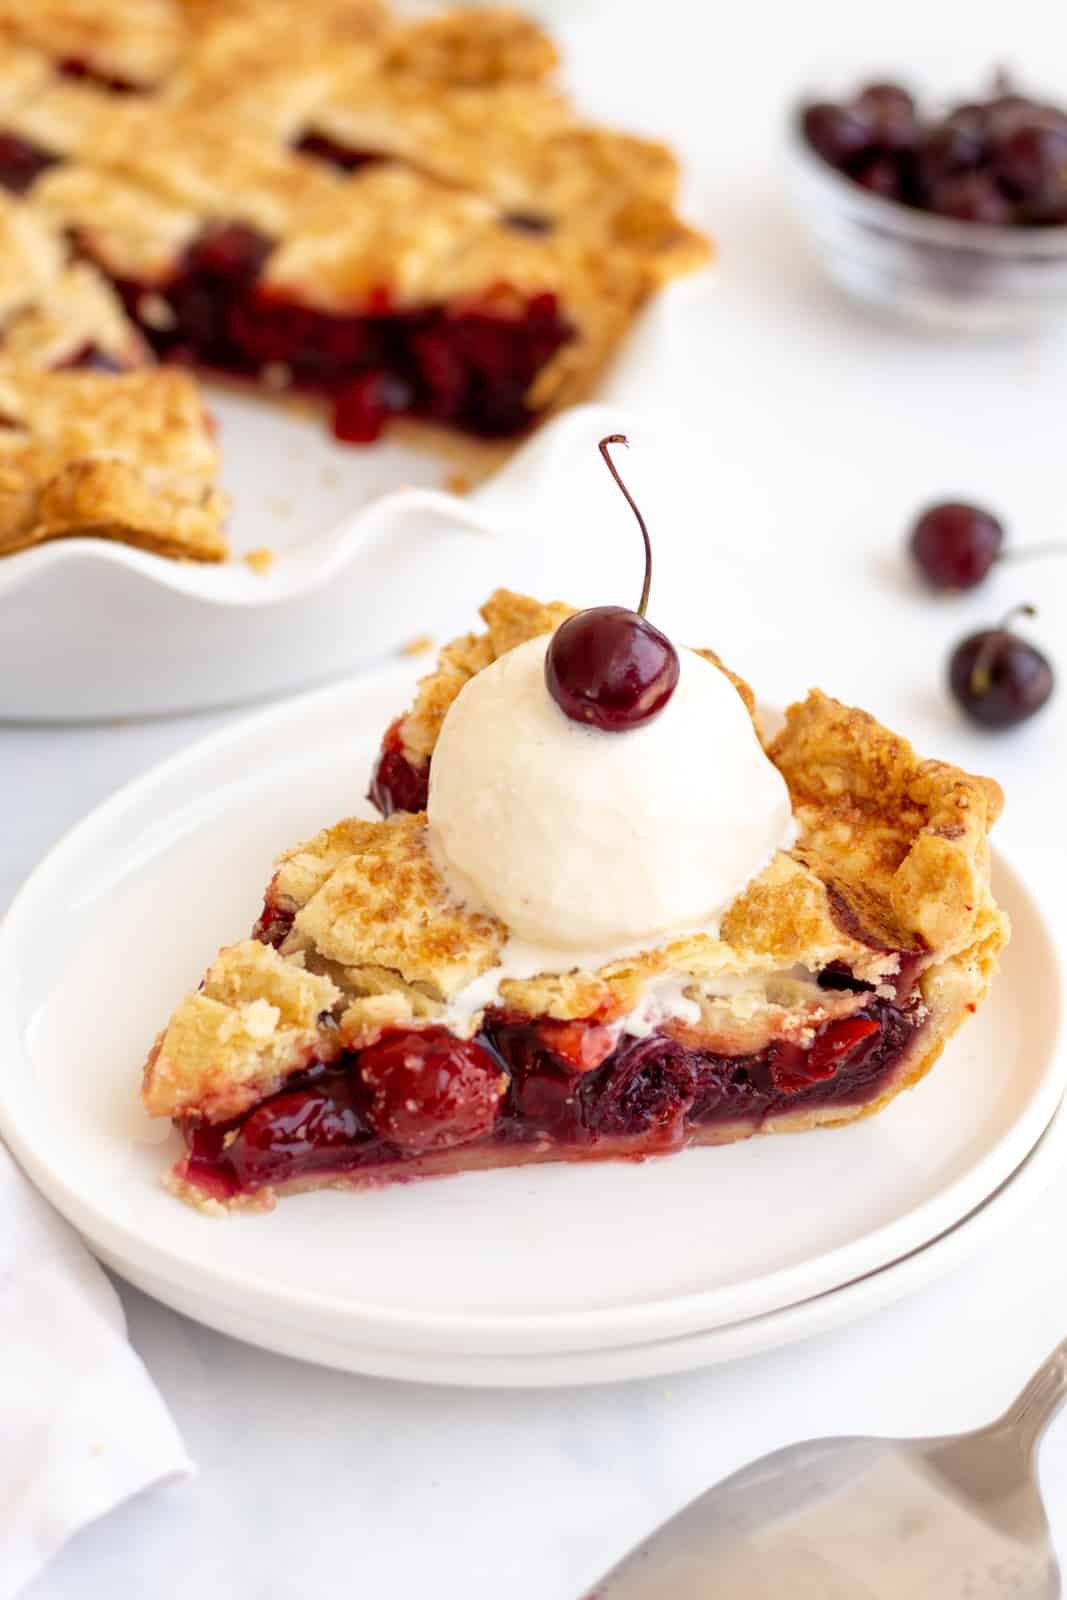 Slice of Cherry Pie on white plate topped with ice cream and cherry